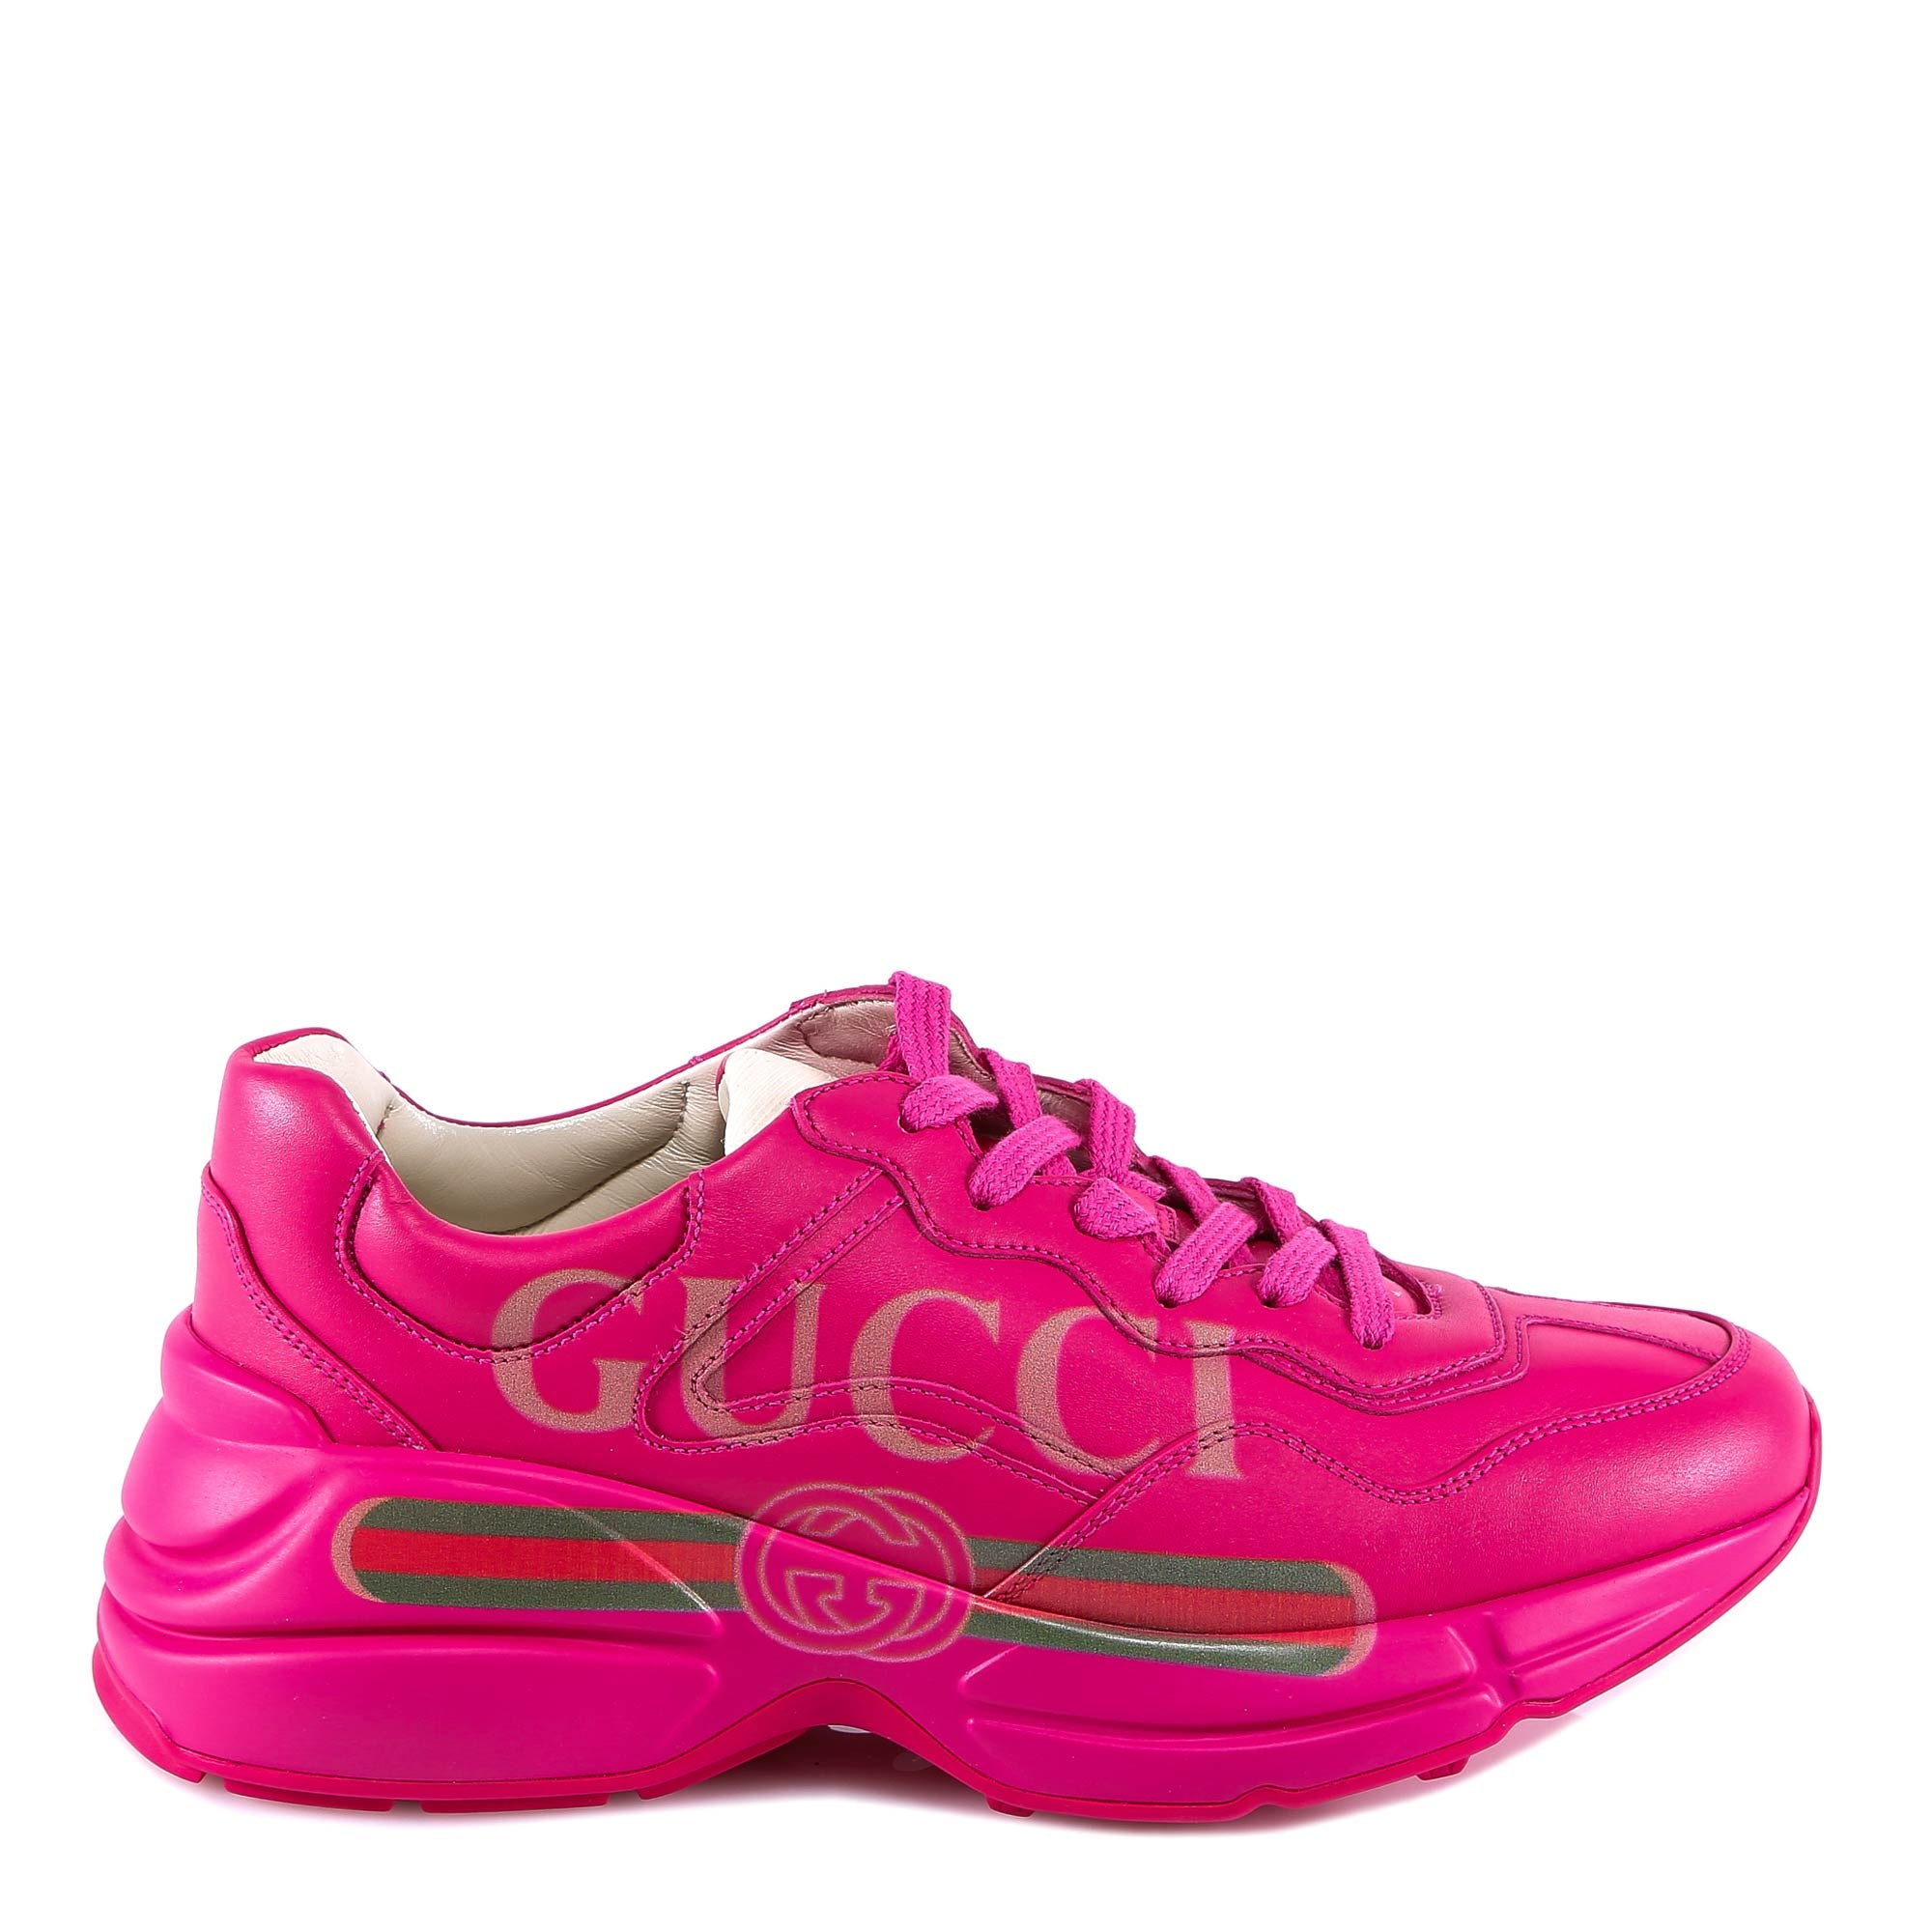 Gucci Rhyton Sneakers, Pink